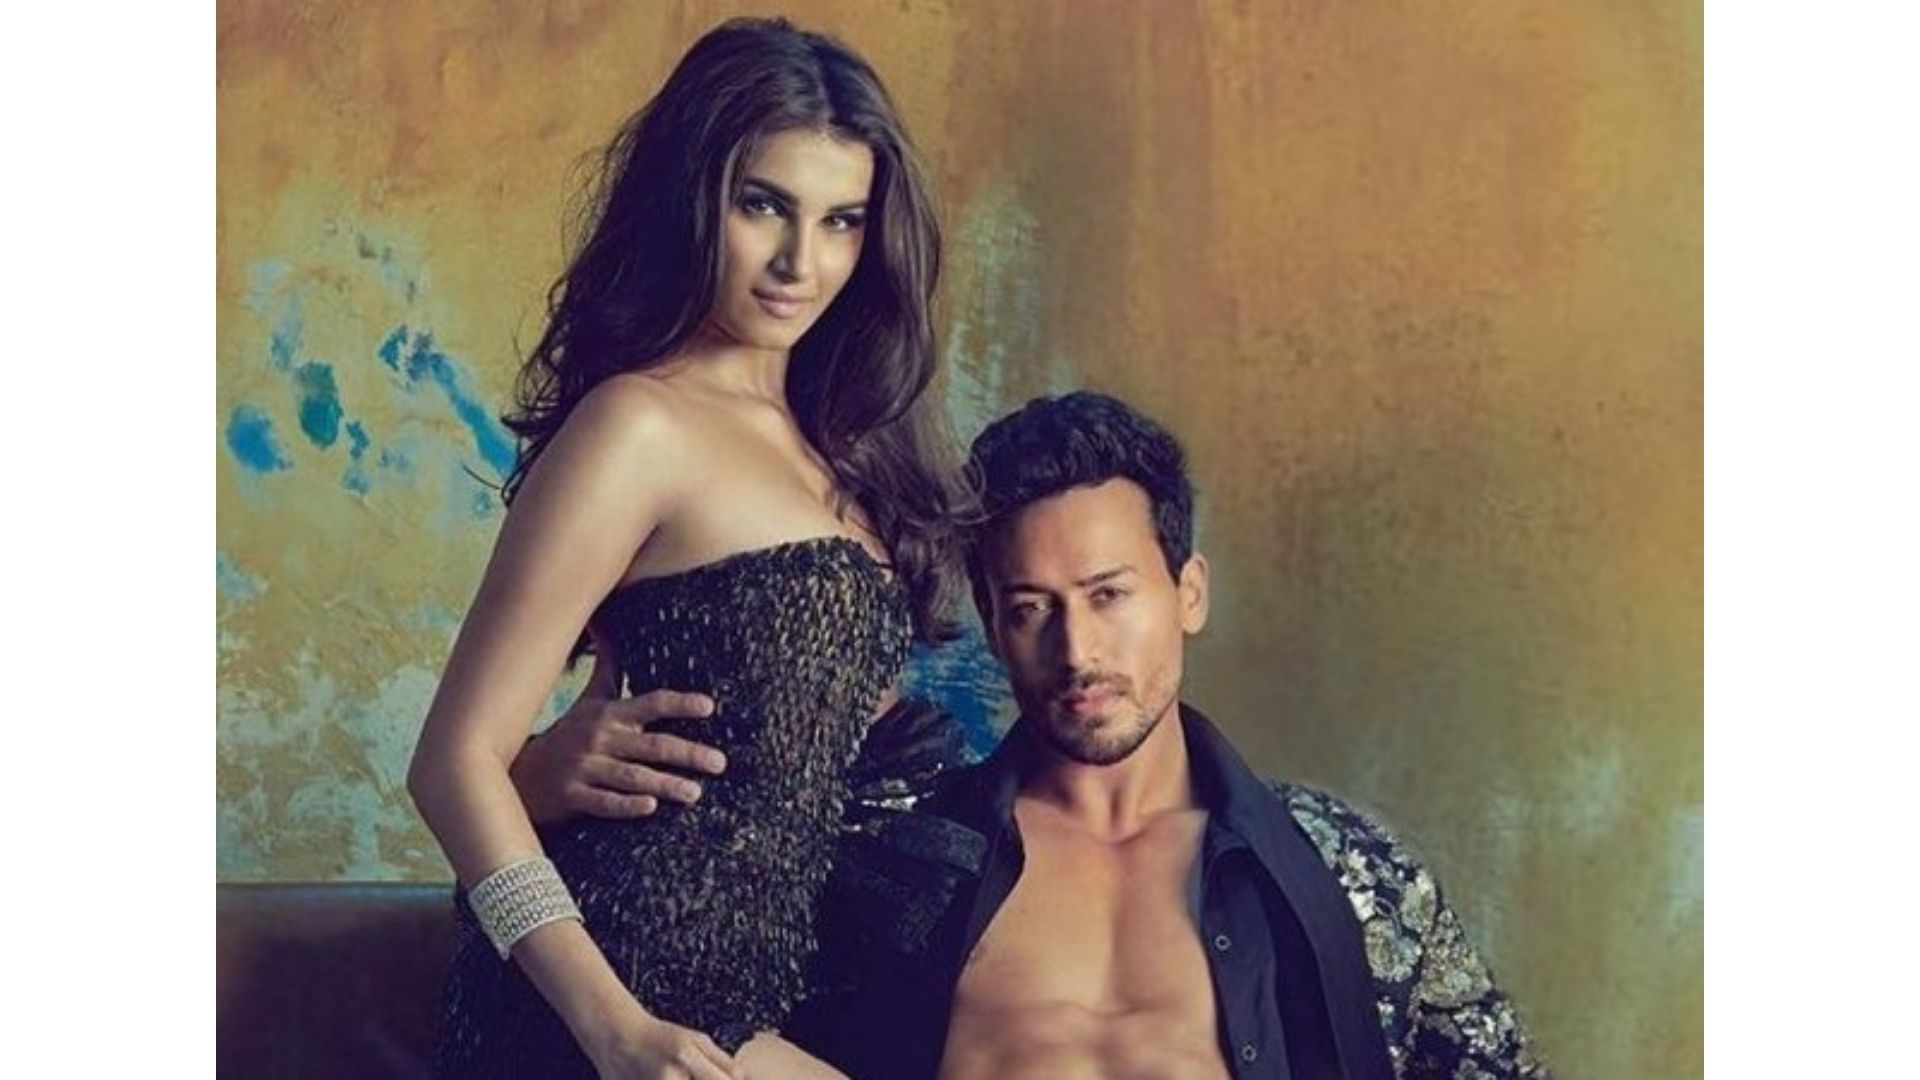 Heropanti 2: Tiger Shroff Officially Announces The Release Date With A New Poster Featuring Tara Sutaria